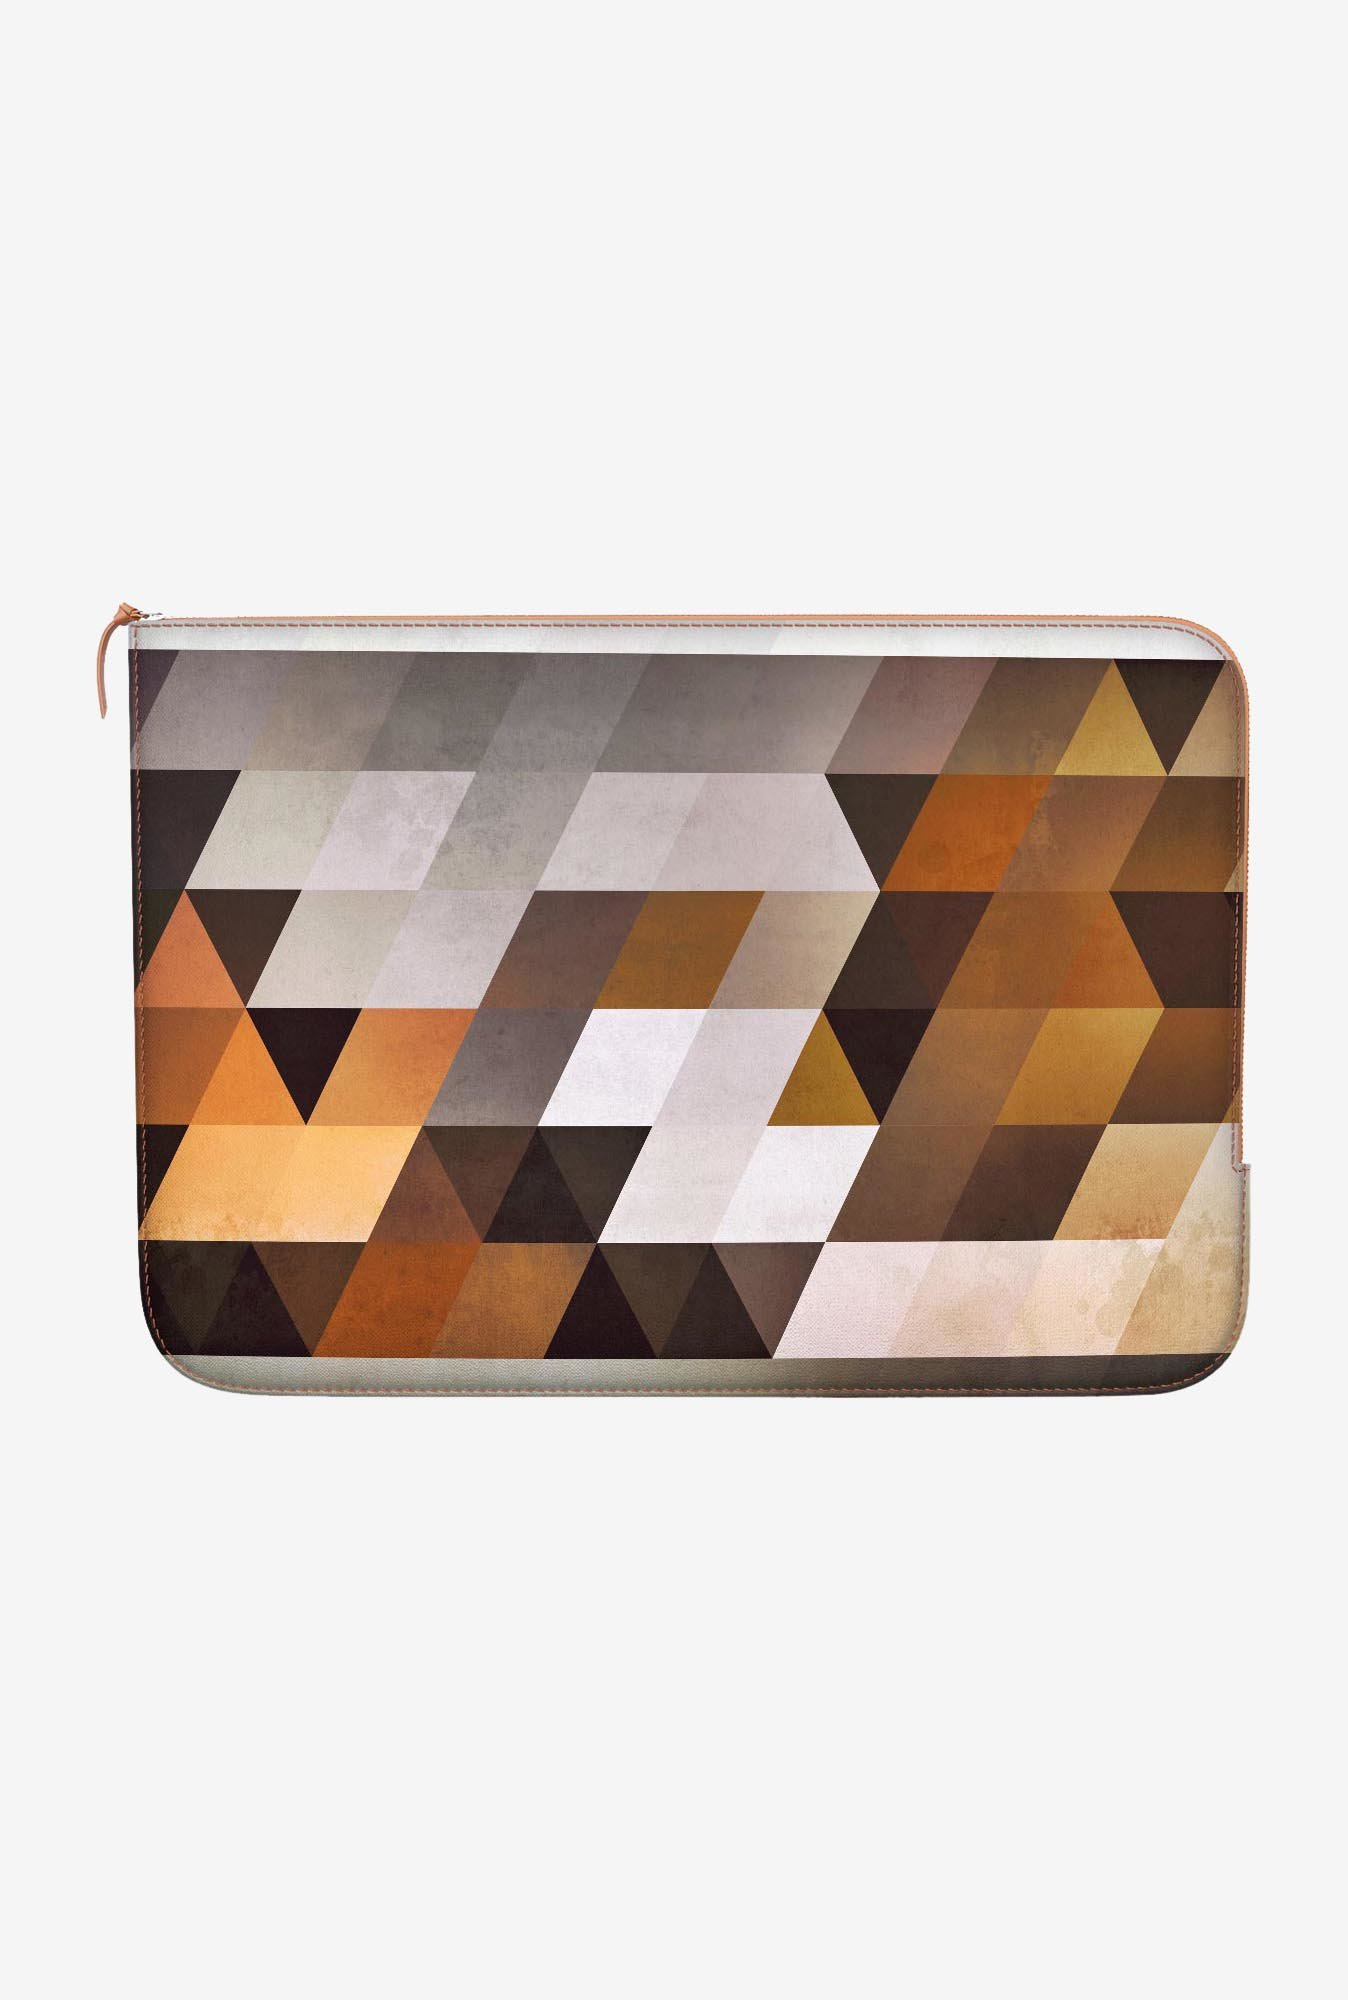 DailyObjects wwwd blxxx MacBook Air 13 Zippered Sleeve